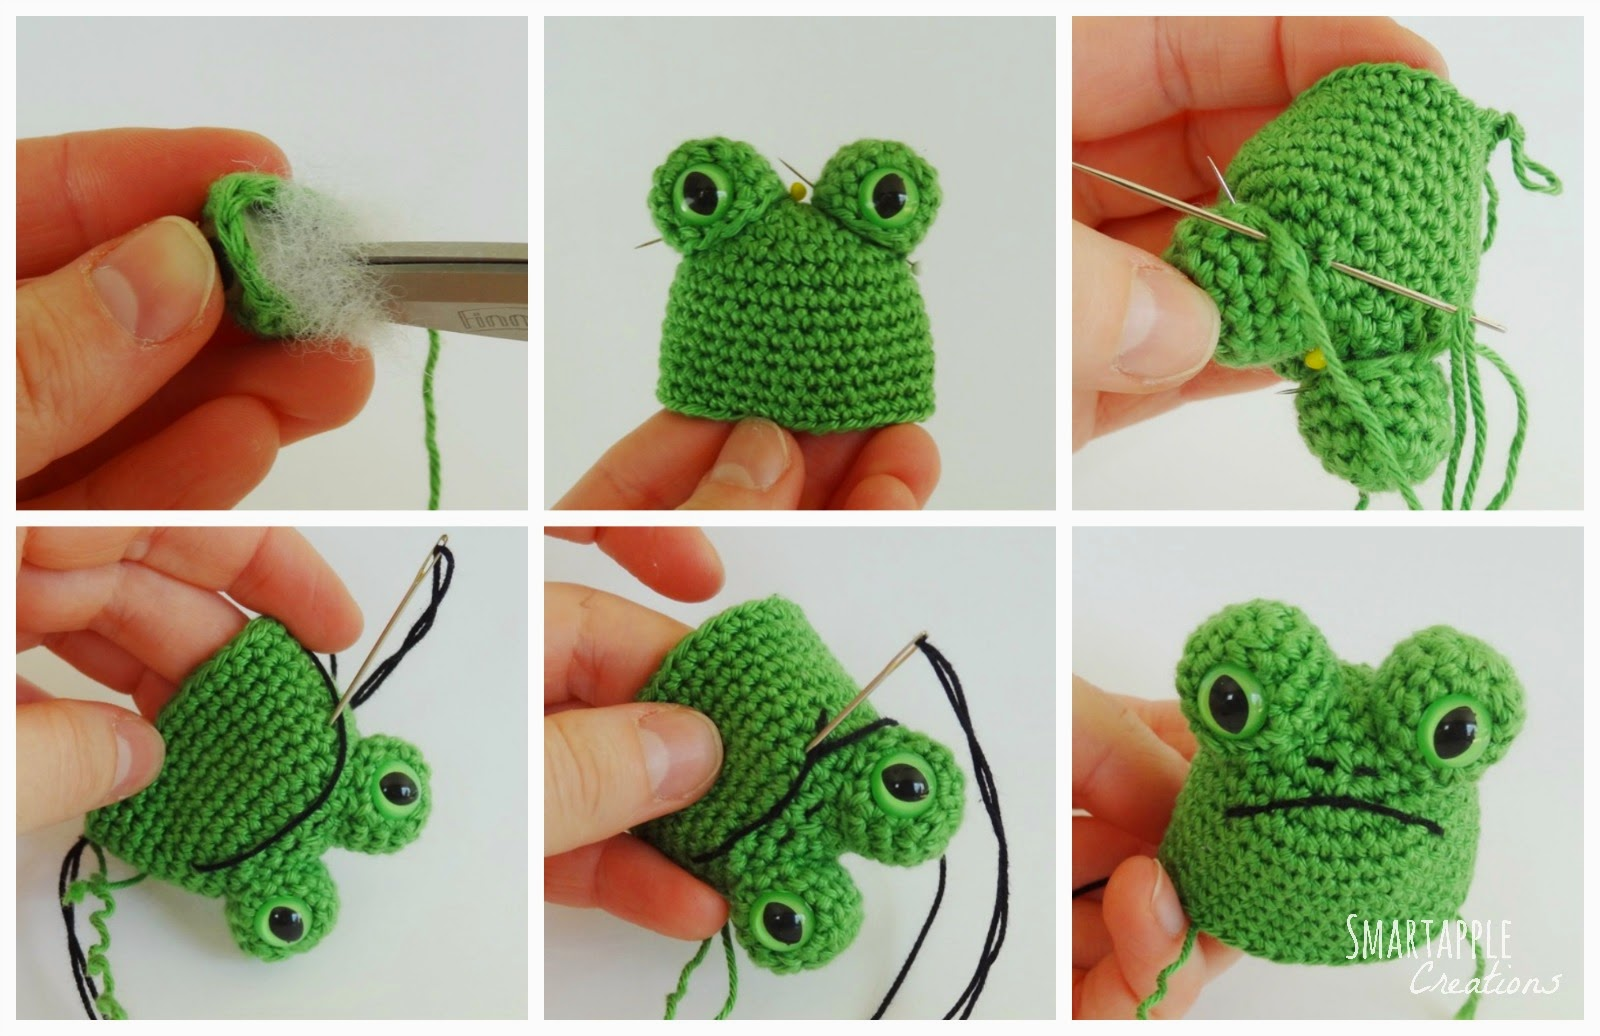 Smartapple Creations - amigurumi and crochet: Free pattern ...